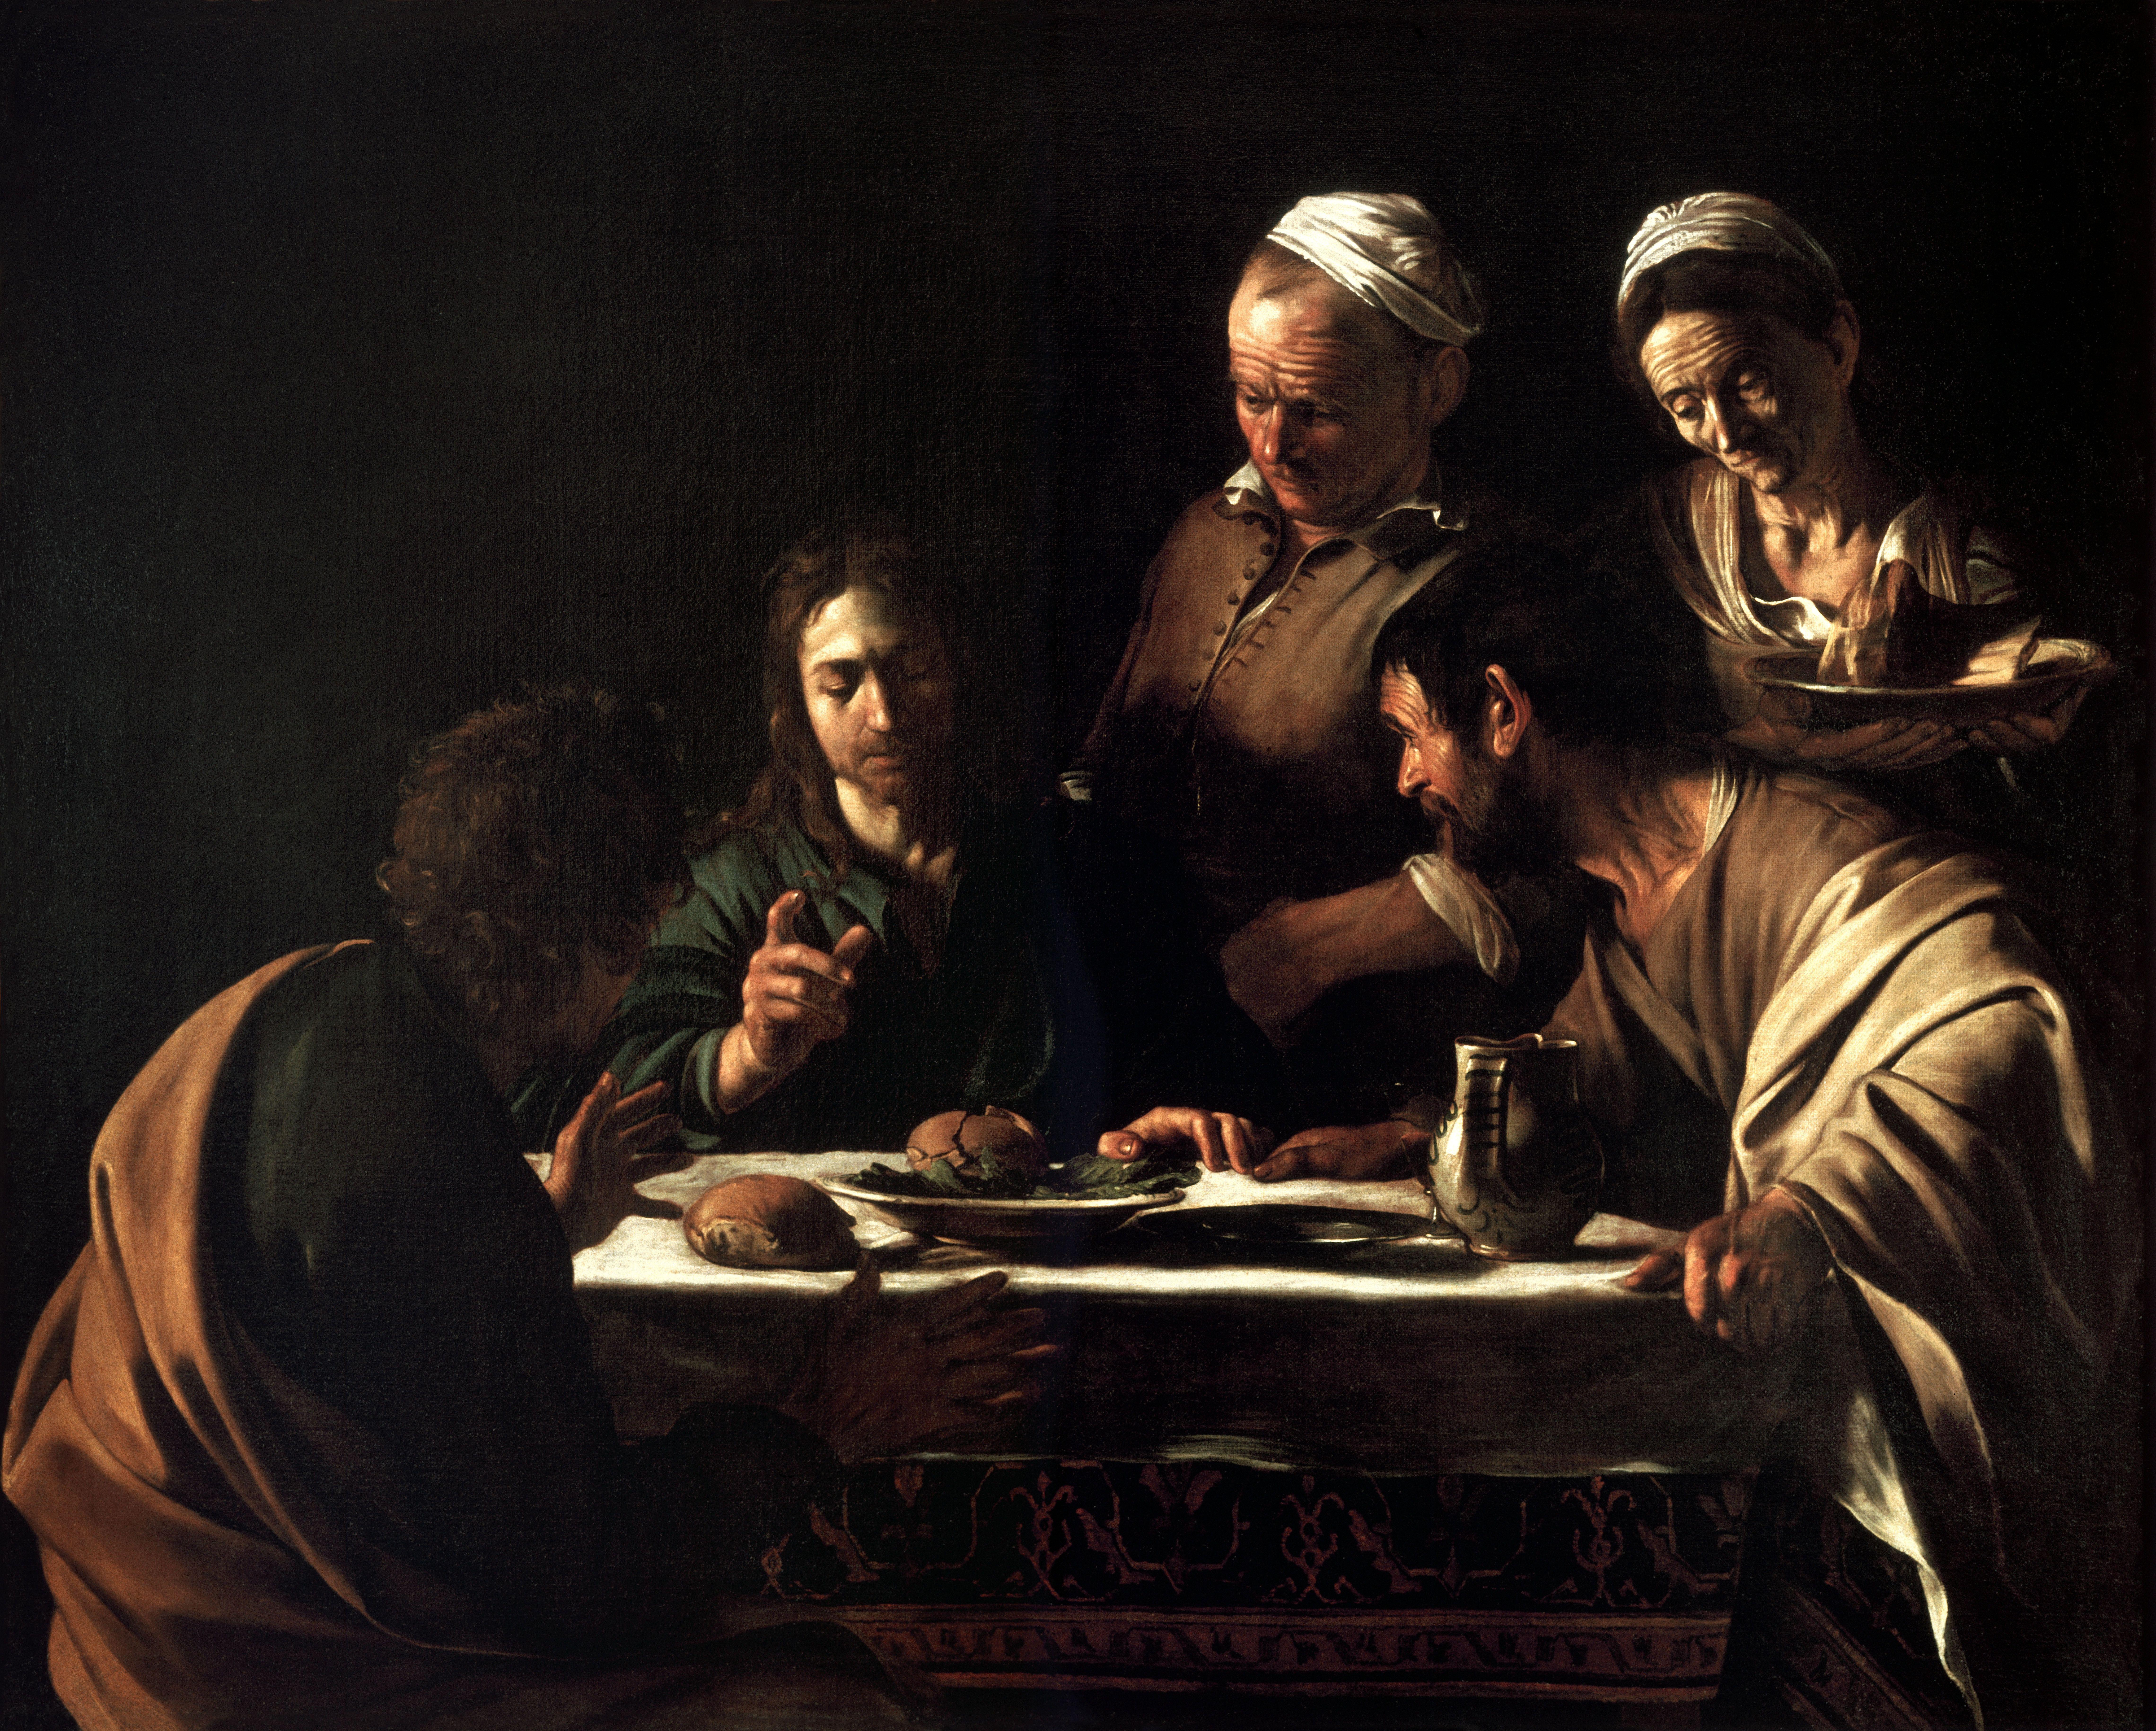 Caravaggio and his paintings